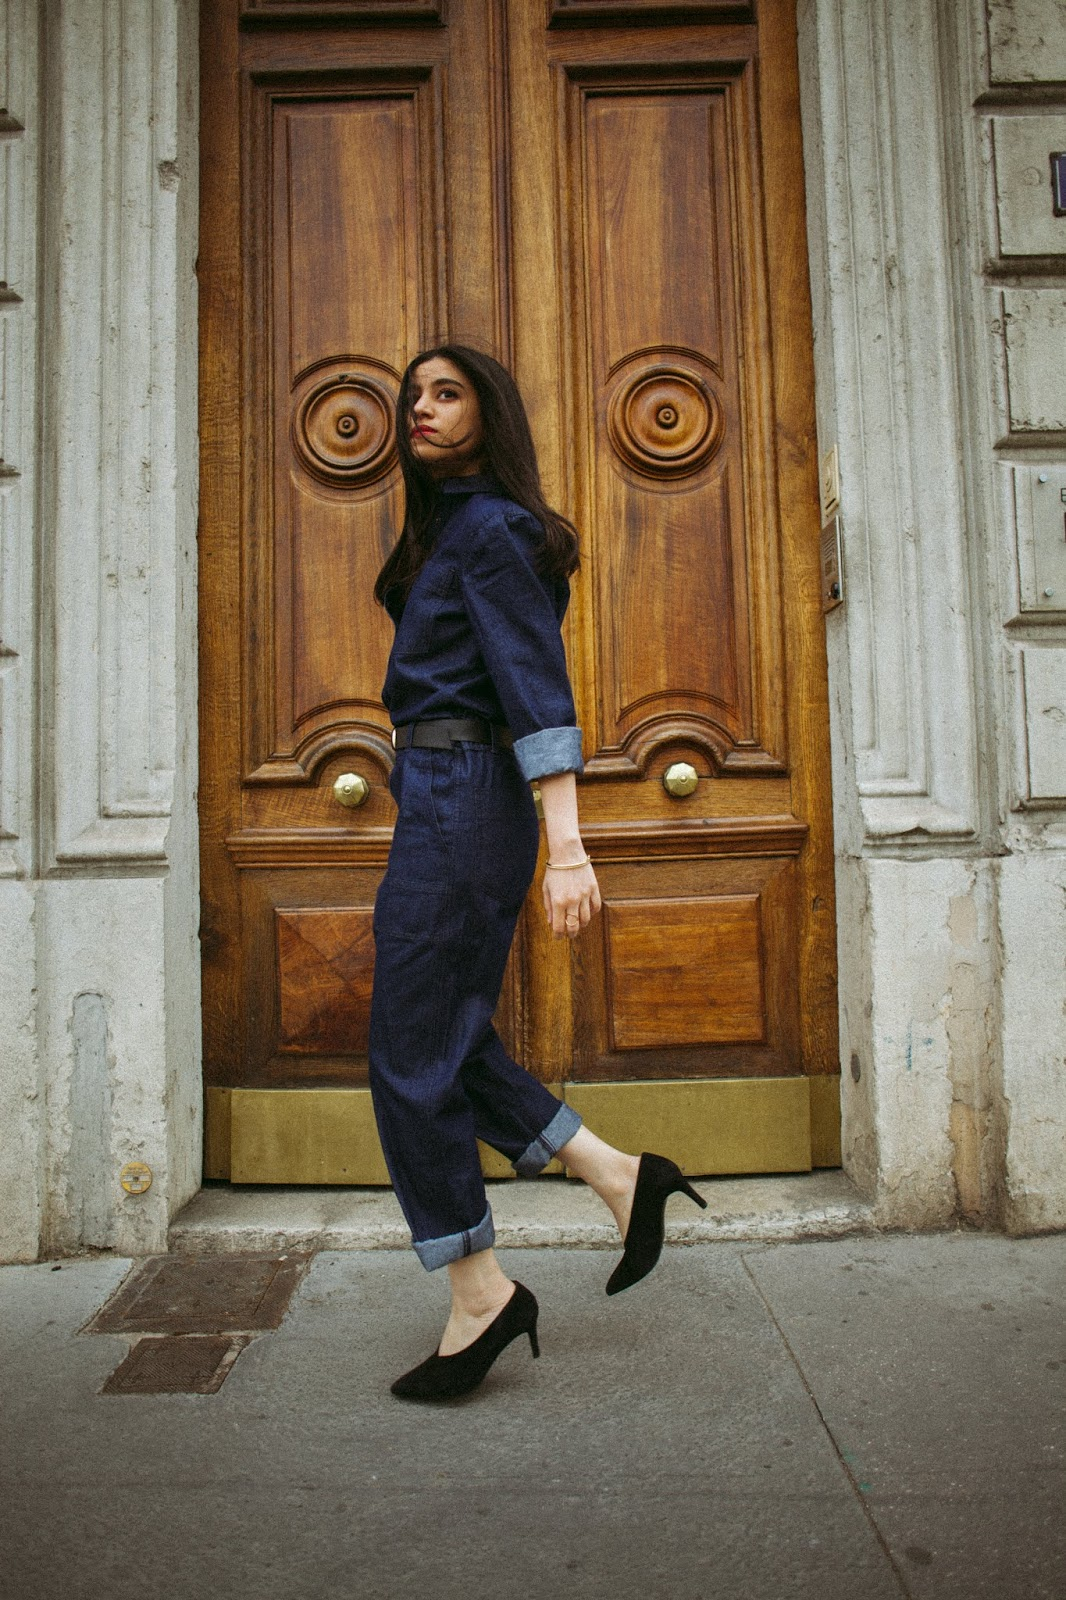 combinaison jean, combinaison denim, amenidaily, ameni daily, modeuse, blogueuse mode, le style de la parisienne, la redoute, la redoute collections, how to be parisian